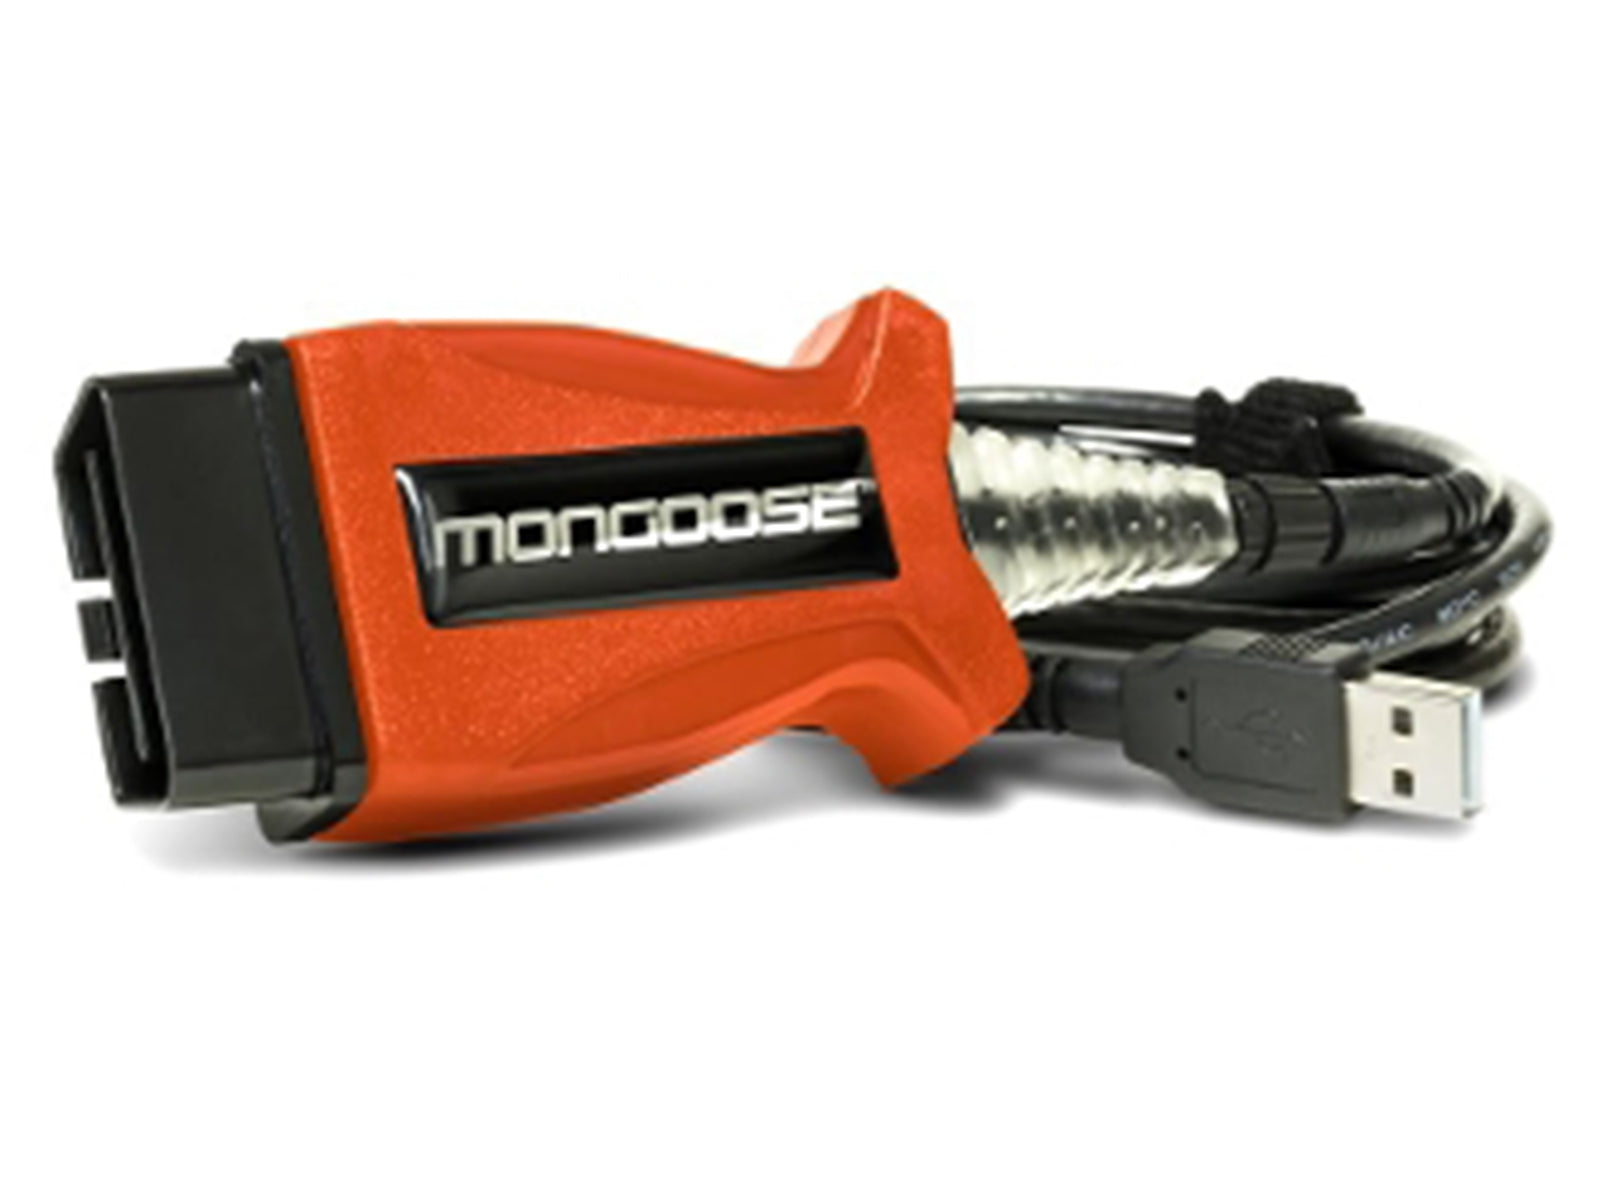 Mongoose Pro for Honda ECU Programming with Bluetooth